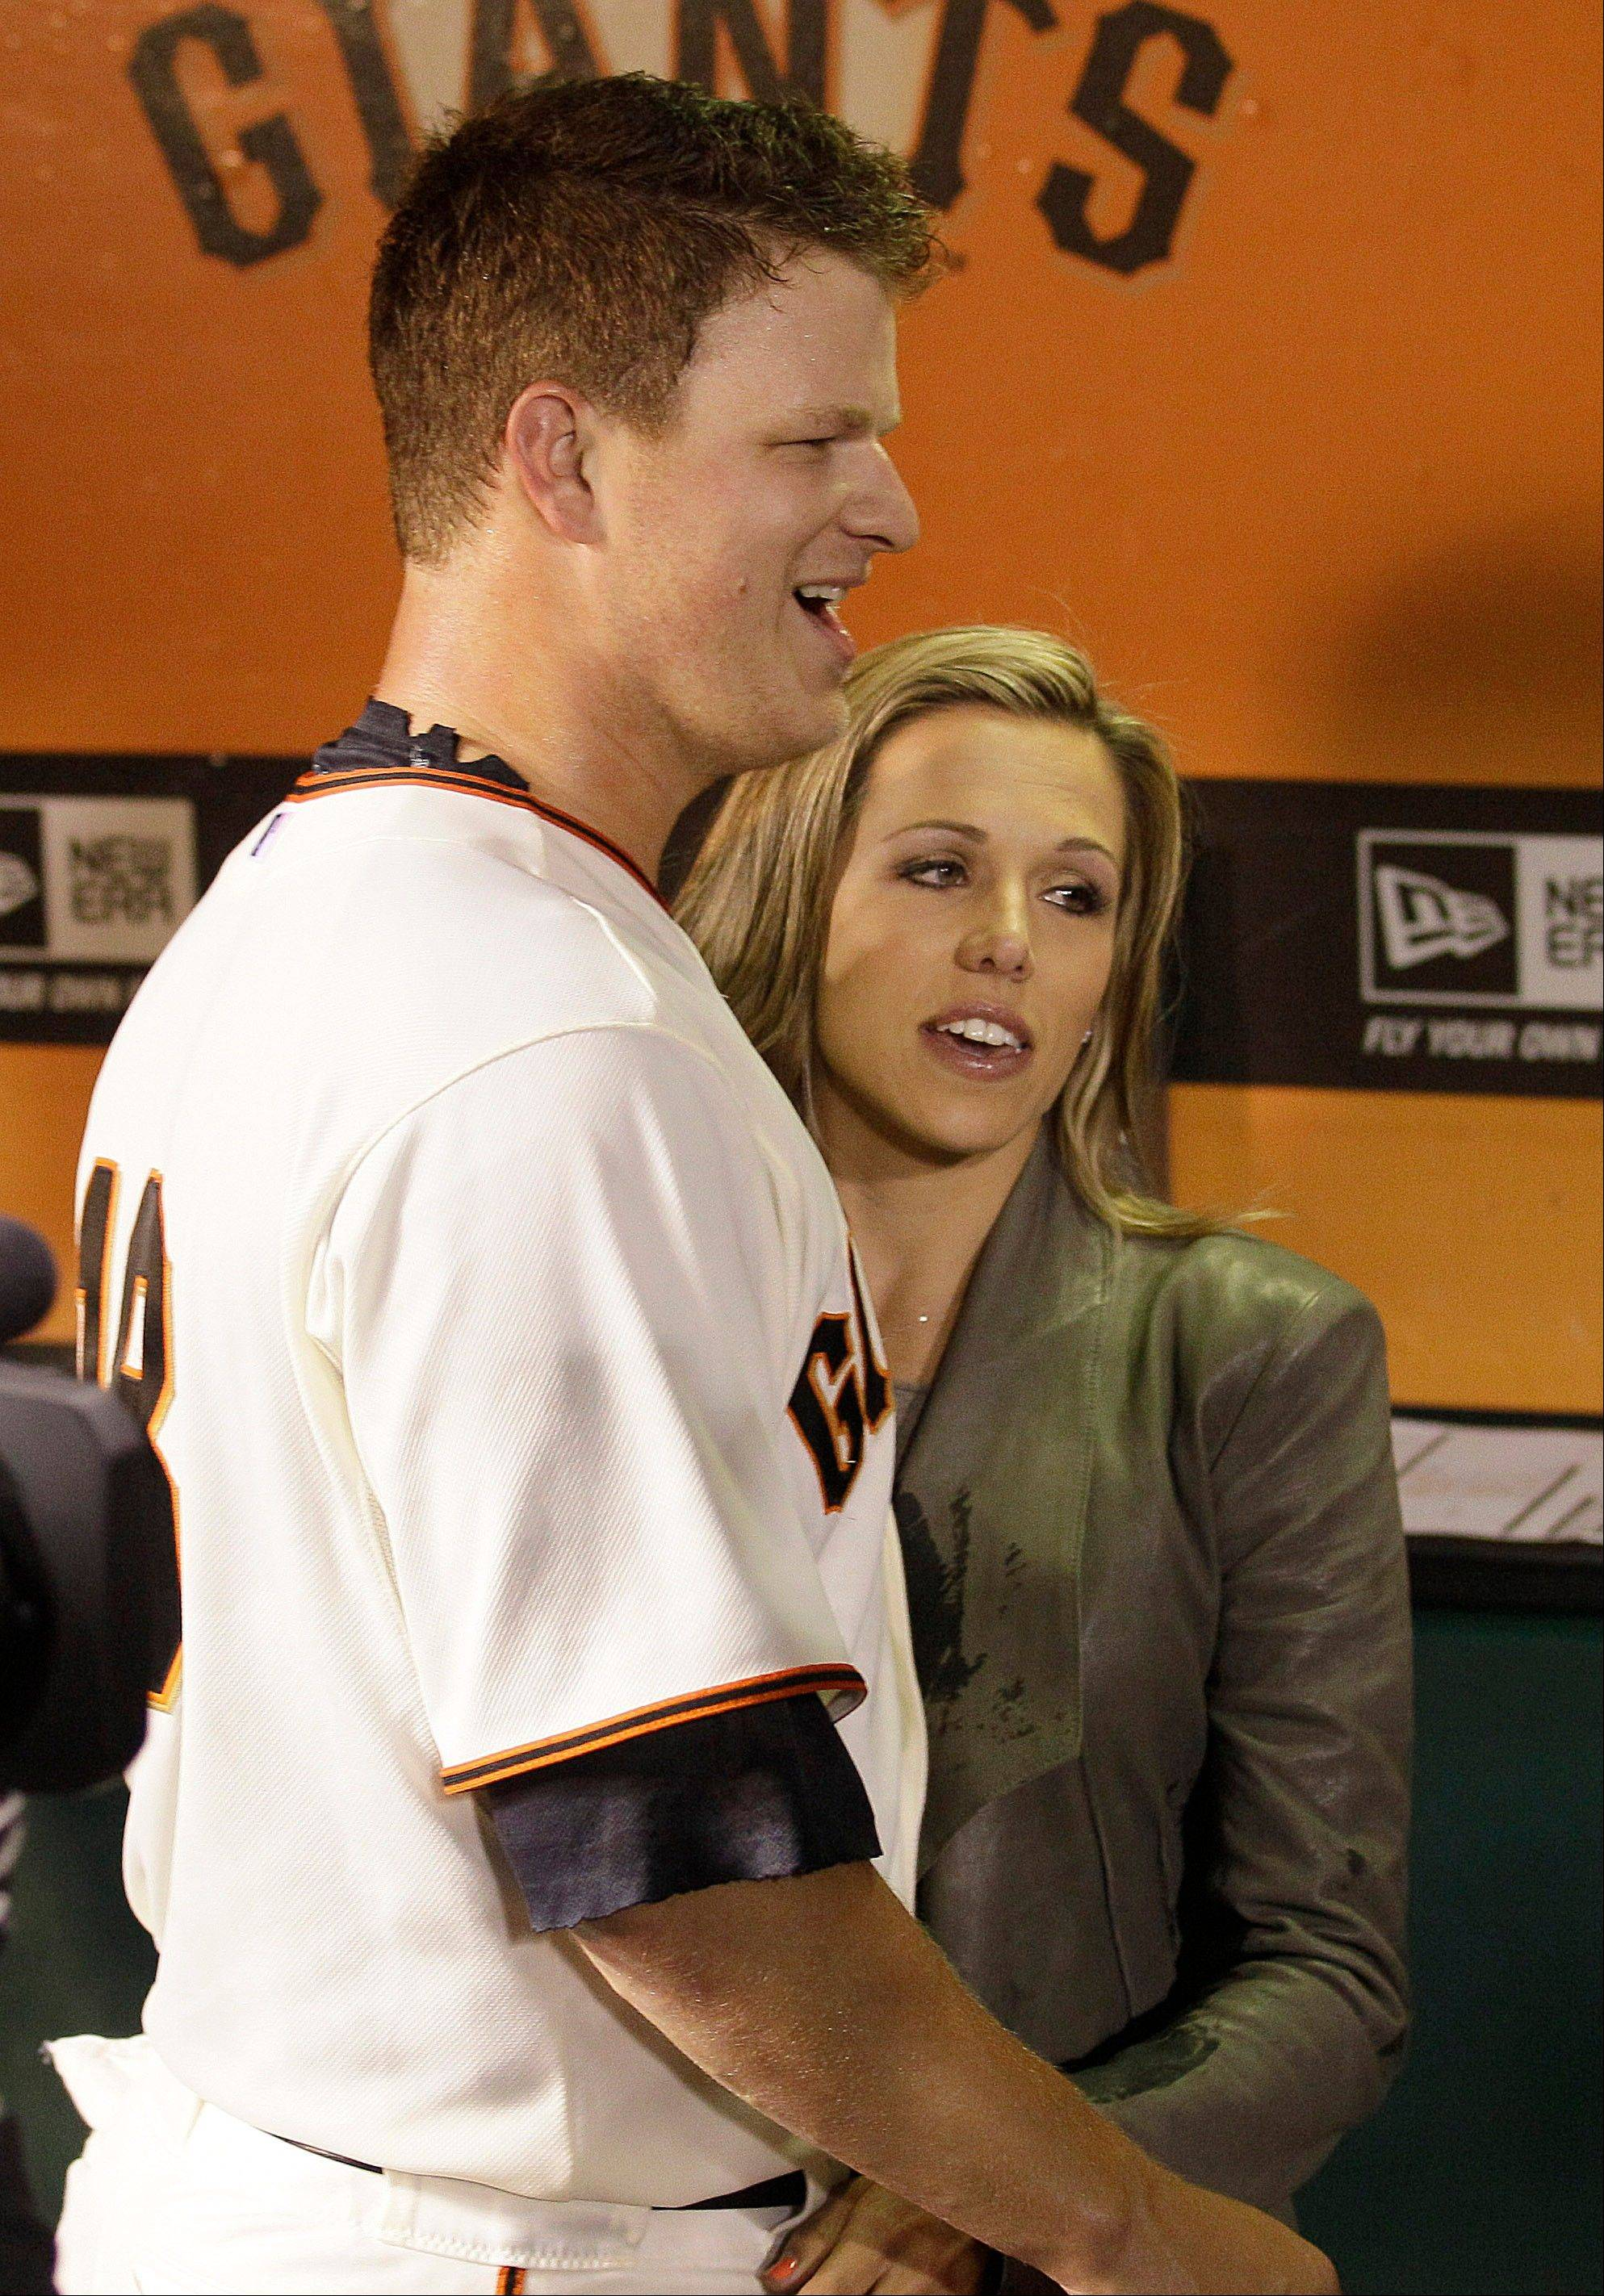 San Francisco Giants pitcher Matt Cain, left, celebrates with his wife, Chelsea, Wednesday after beating the Houston Astros in San Francisco.